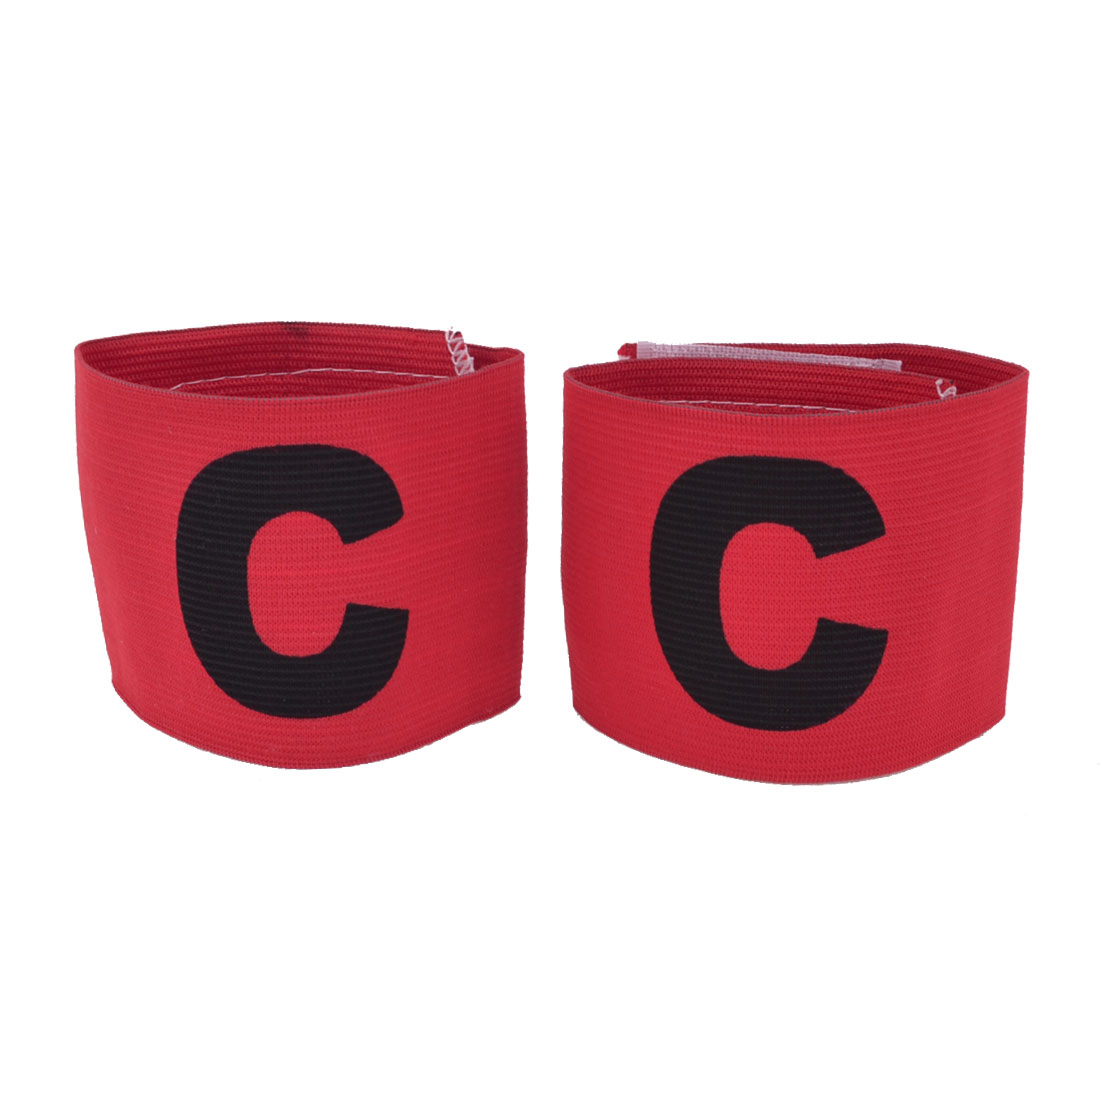 Hook Loop Closure Red Stretchy Team Football Captain Armband 2 PCS